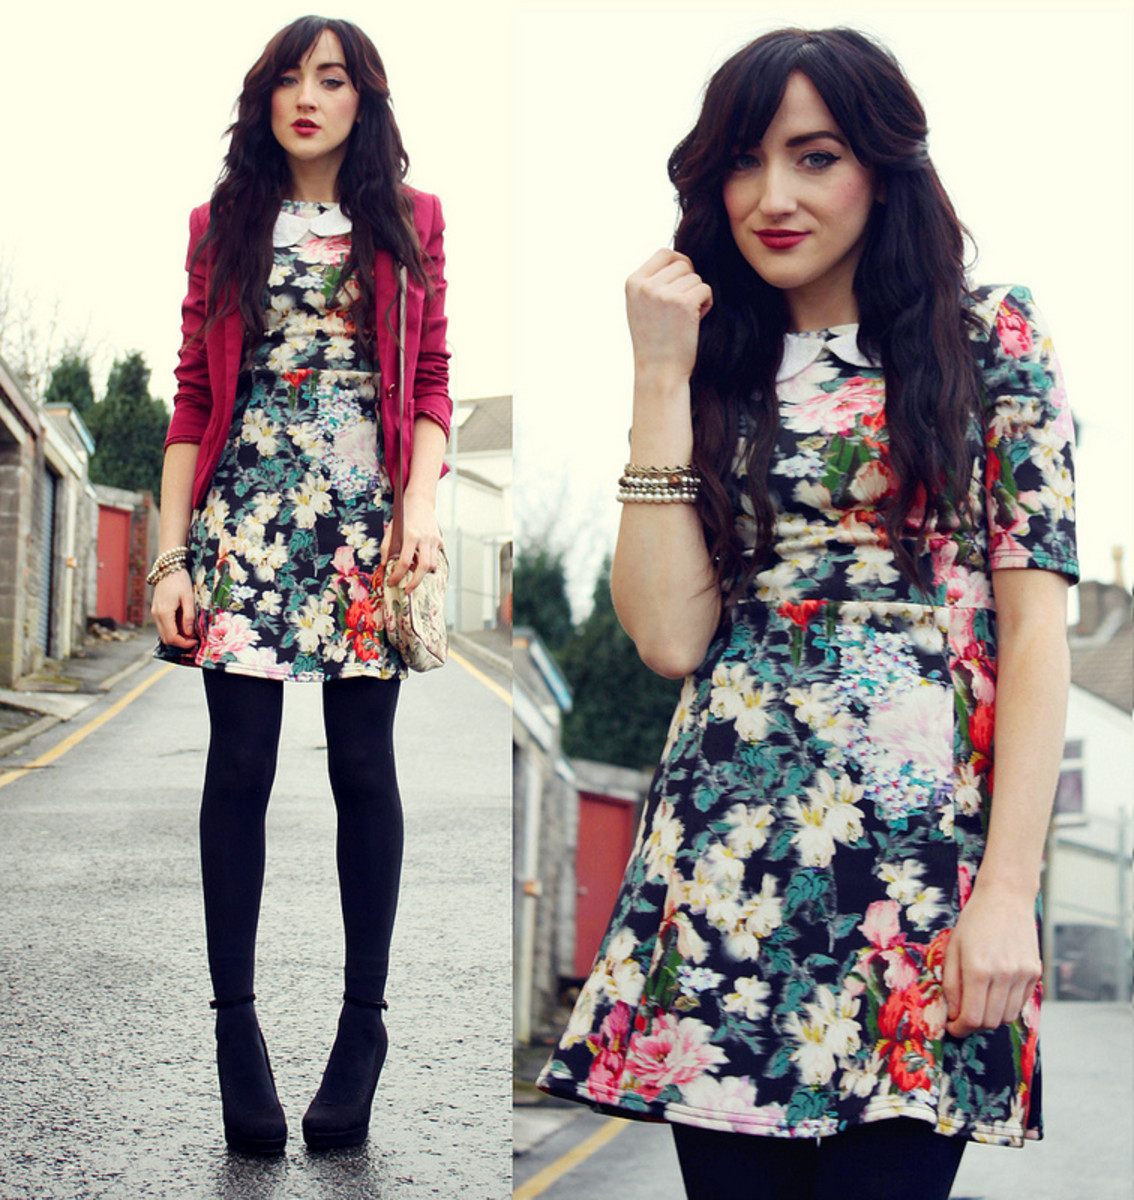 Choose a vintage inspired, dark floral dress.  Add black tights and a jacket or sweater for cooler months.